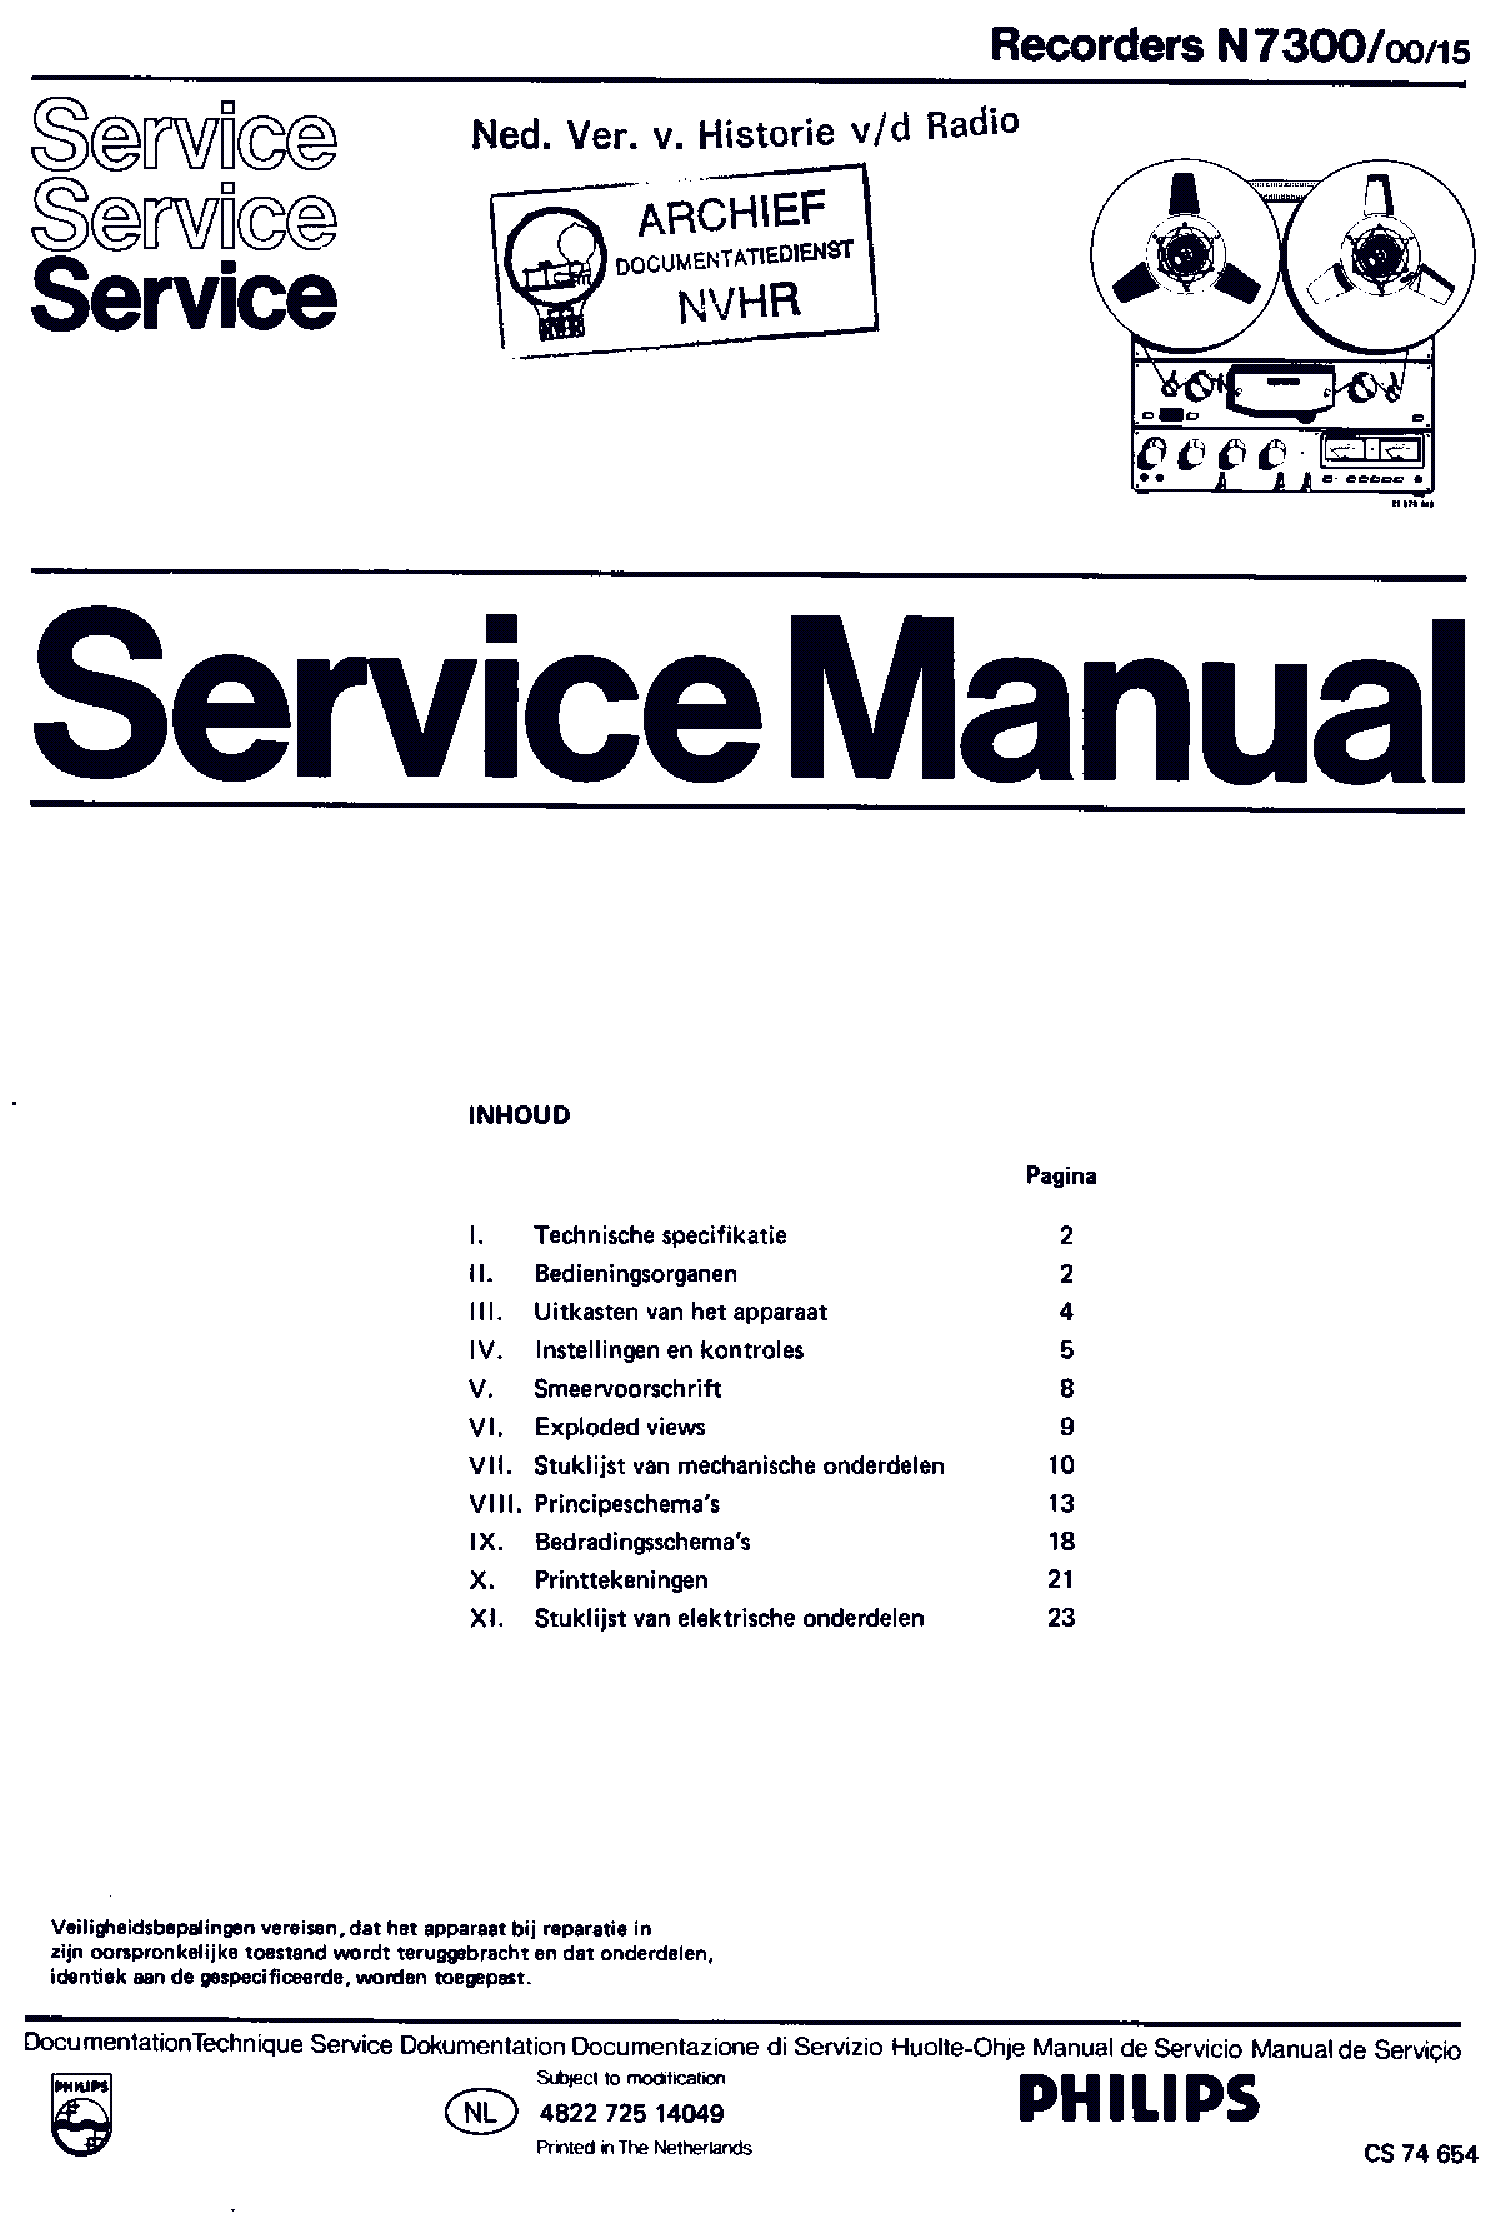 PHILIPS N7300-00-15 TOP TAPE RECORDER SM service manual (1st page)